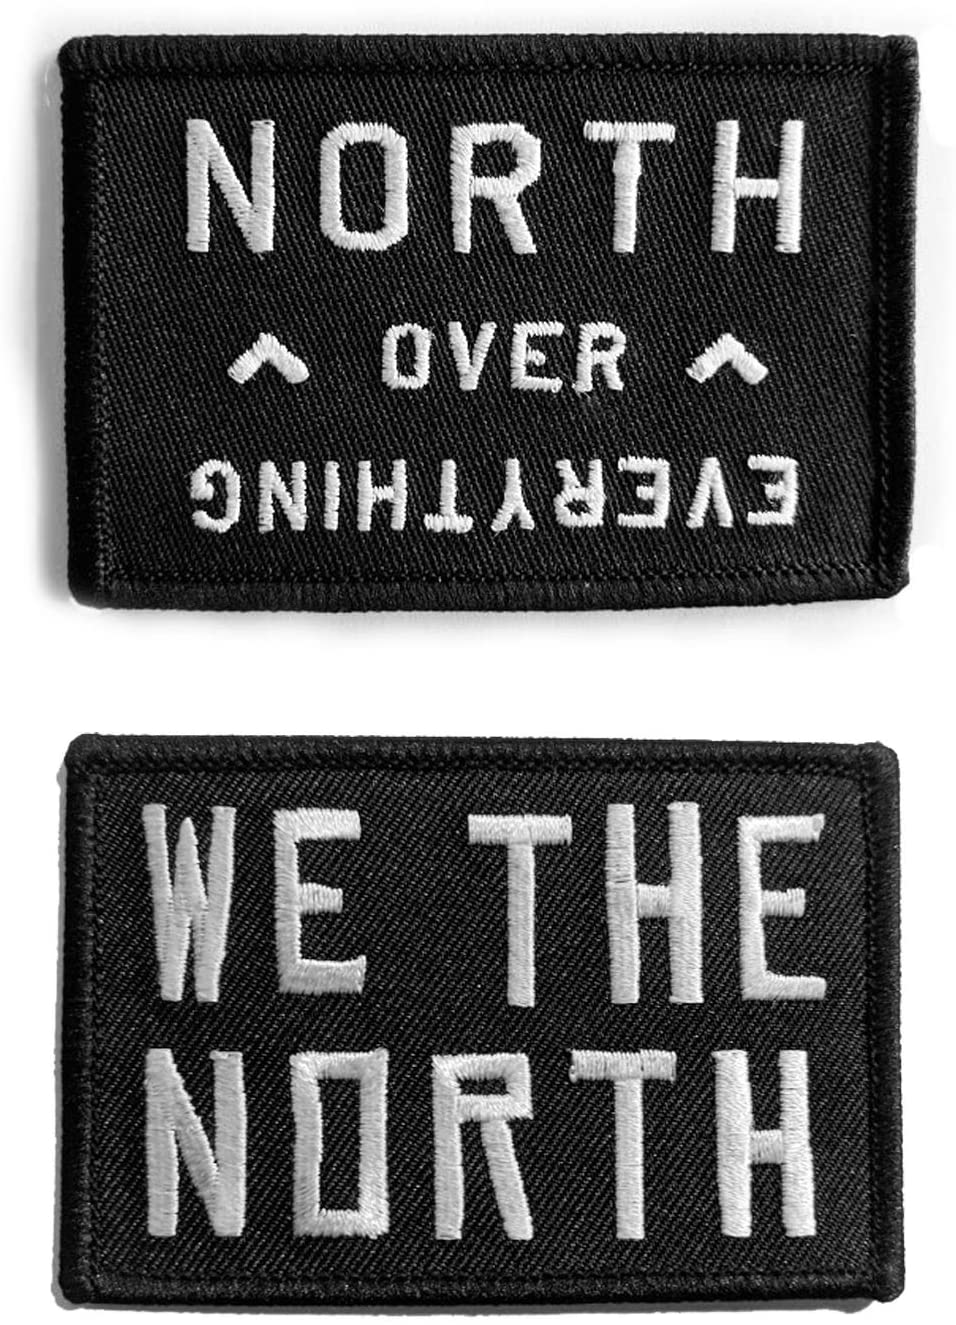 WE THE NORTH / North Over Everything combo set - Iron-on Patches